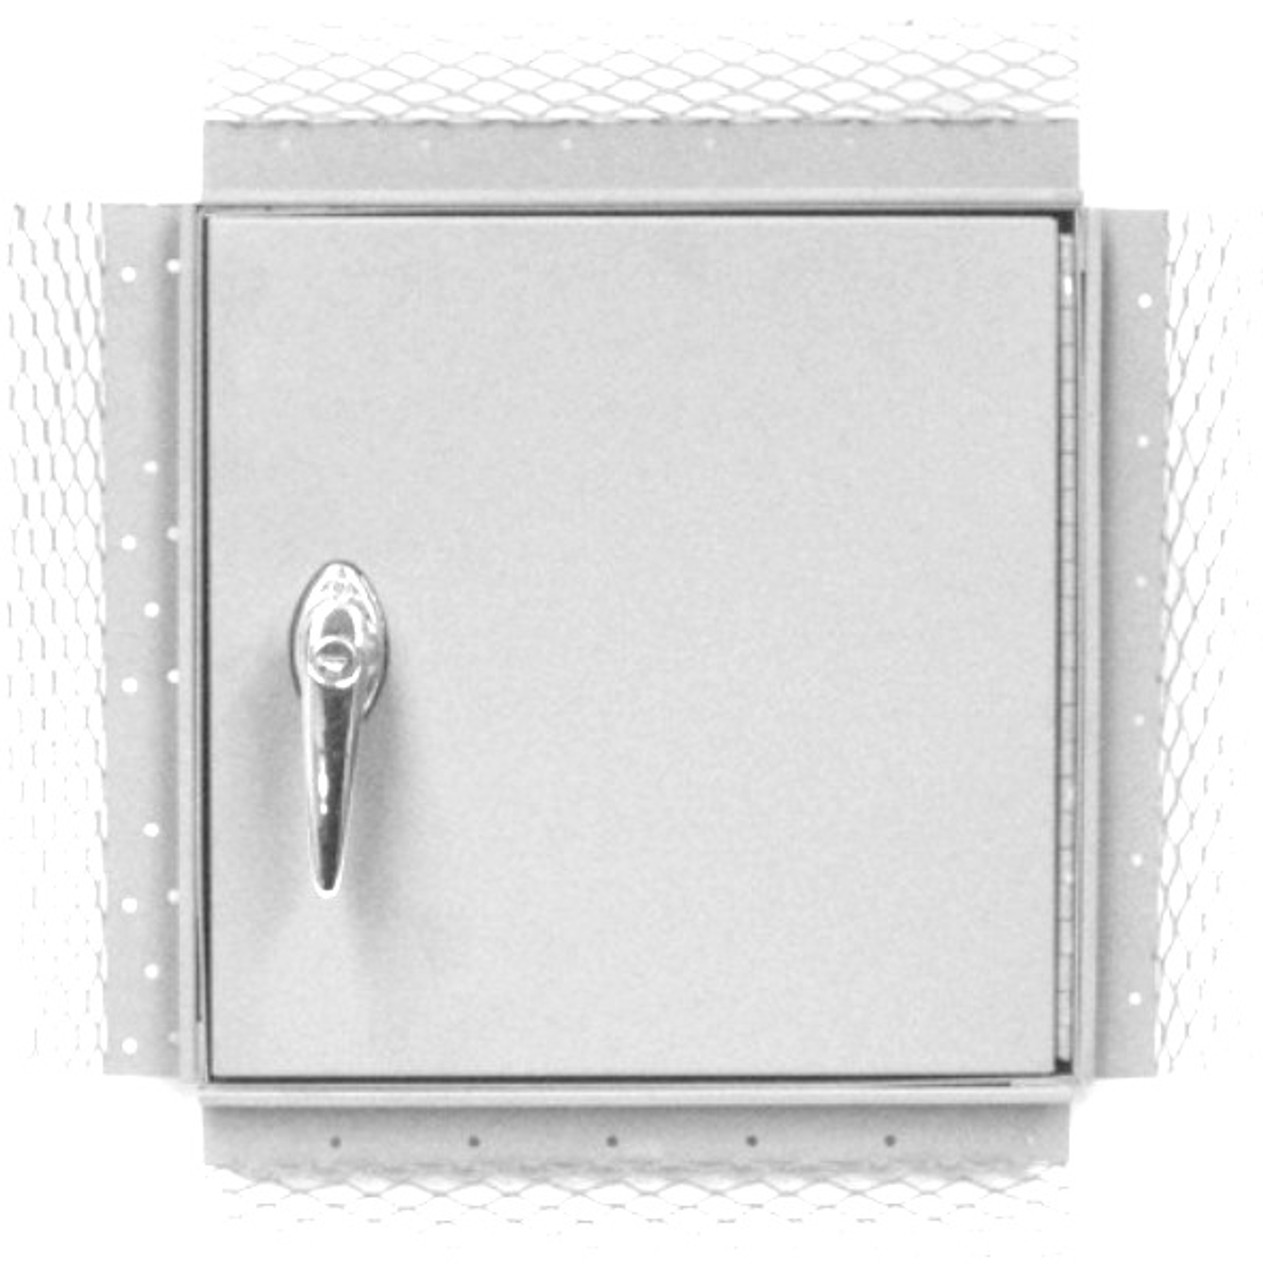 20in x 30in XPA-PWE-Series Insulated Exterior Access Door for Walls Only w/Exterior u0026 White powder coat primer  sc 1 st  The Access Panel Store & 20in x 30in JL Industries XPA-PWE-Series Access Panel